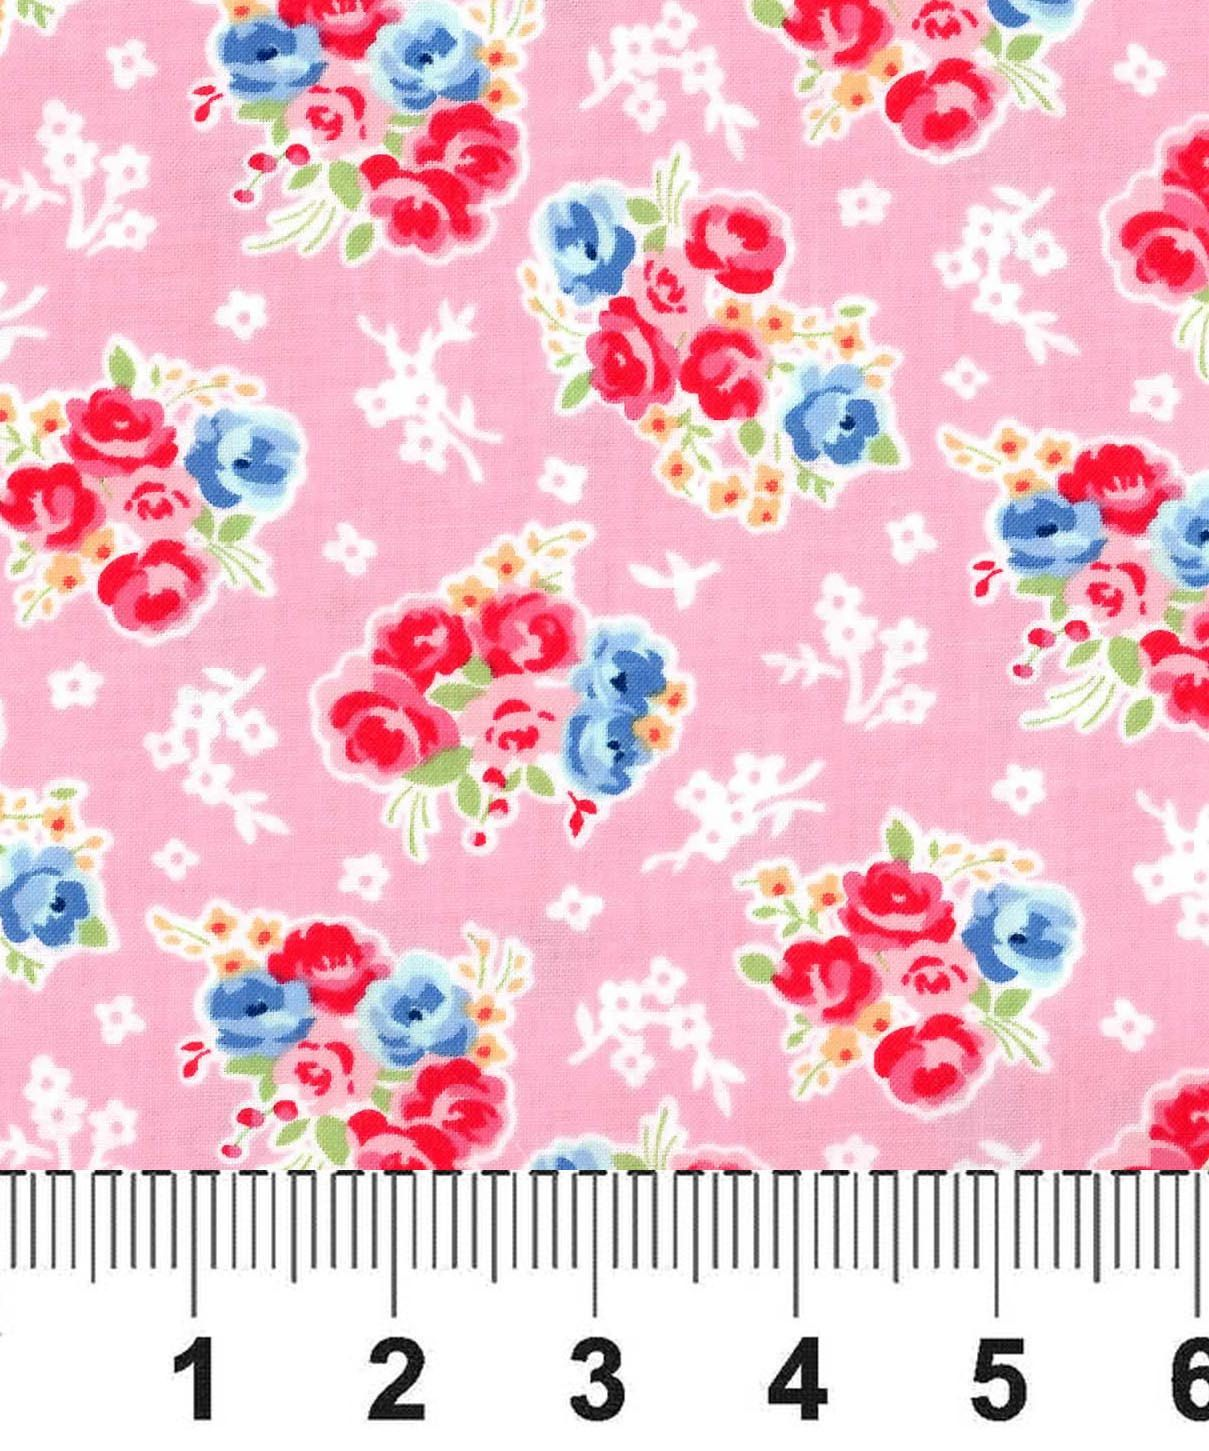 LAKEHOUSE-PAM KITTY COLLECTION BY HOLLY HOLDERMAN VARIOUS FABRICS BY THE YARD